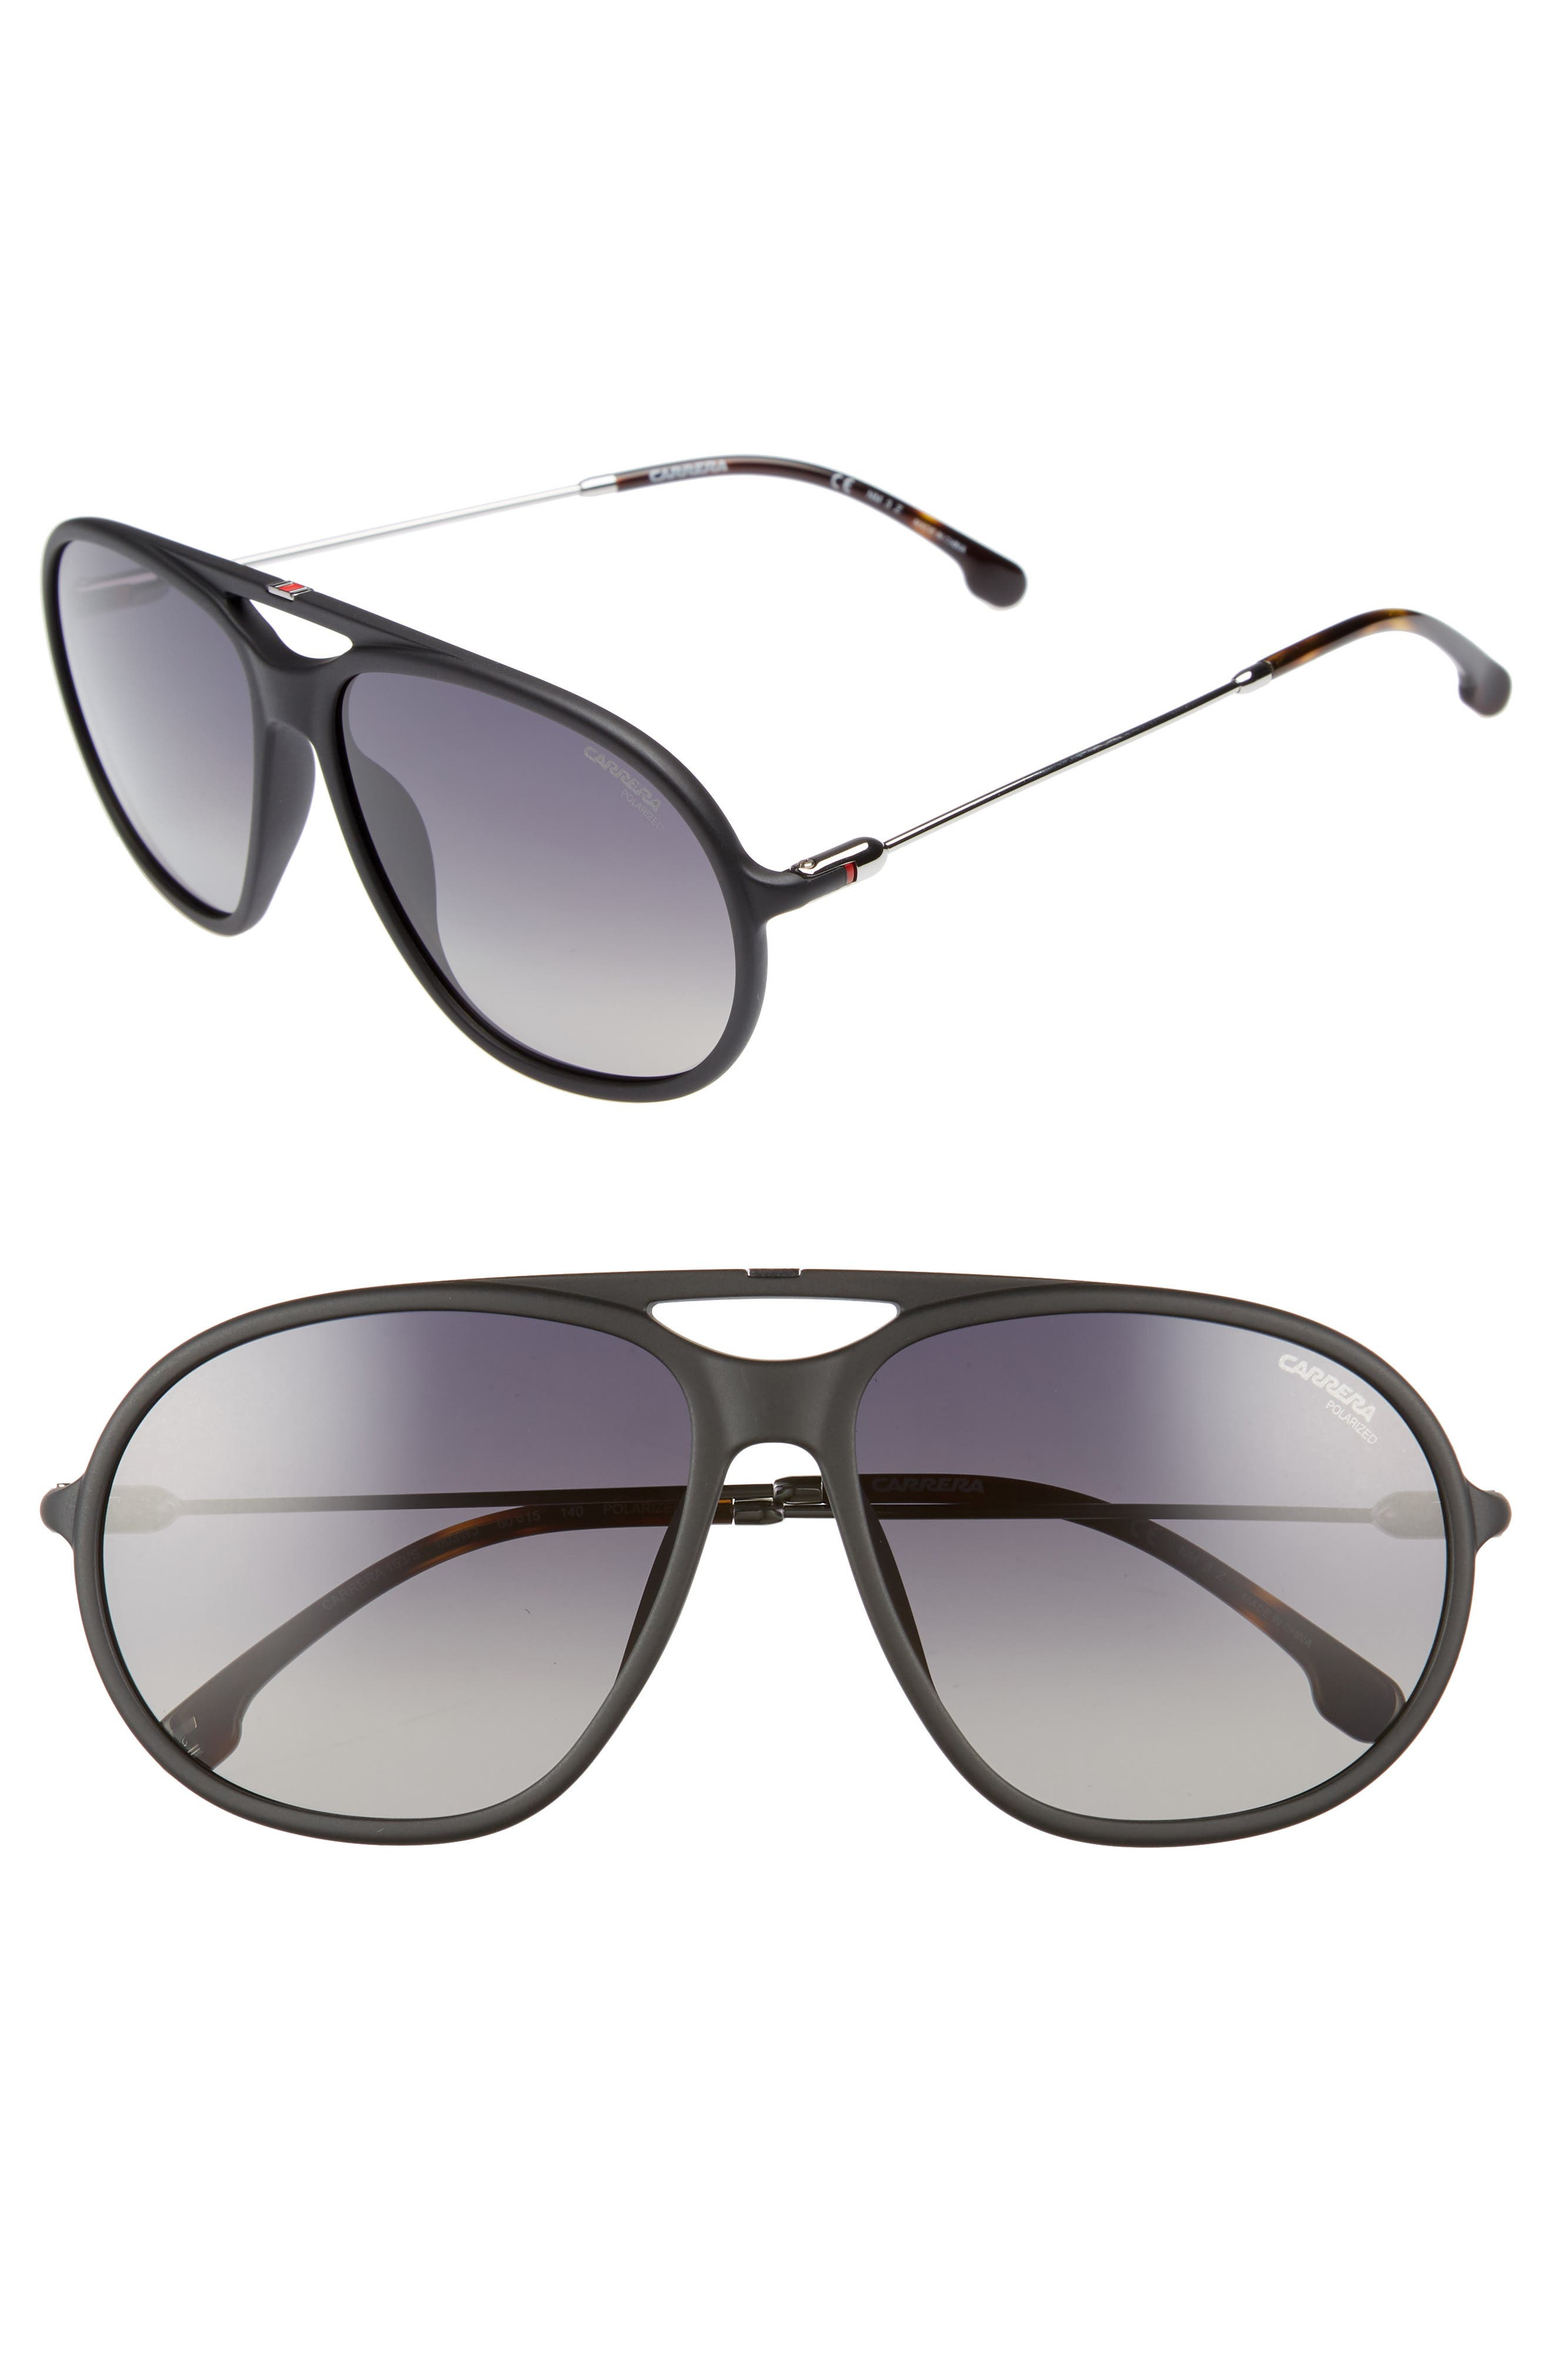 60mm Polarized Aviator Sunglasses,                             Main thumbnail 1, color,